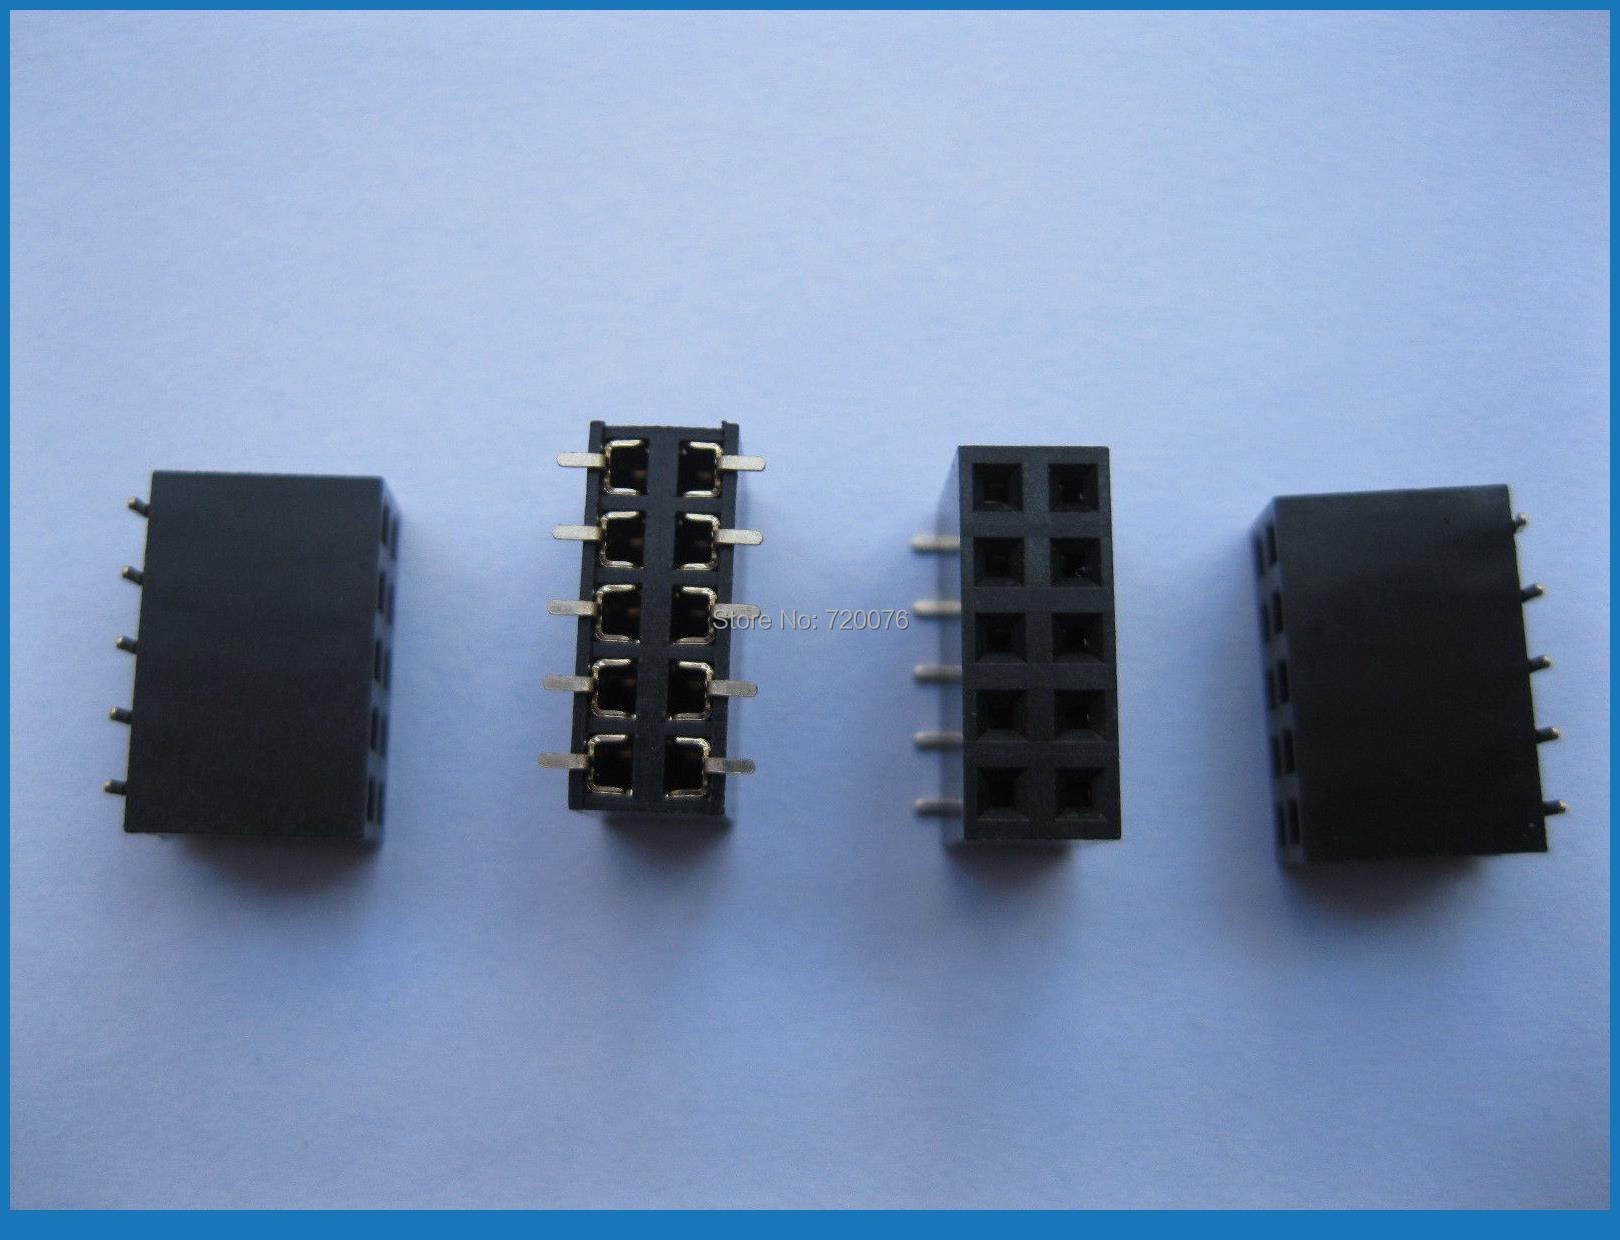 10 pcs Gold Plated SMD SMT 2.54mm Breakable Female Pin Header 10pin Dual Row диски helo he844 chrome plated r20